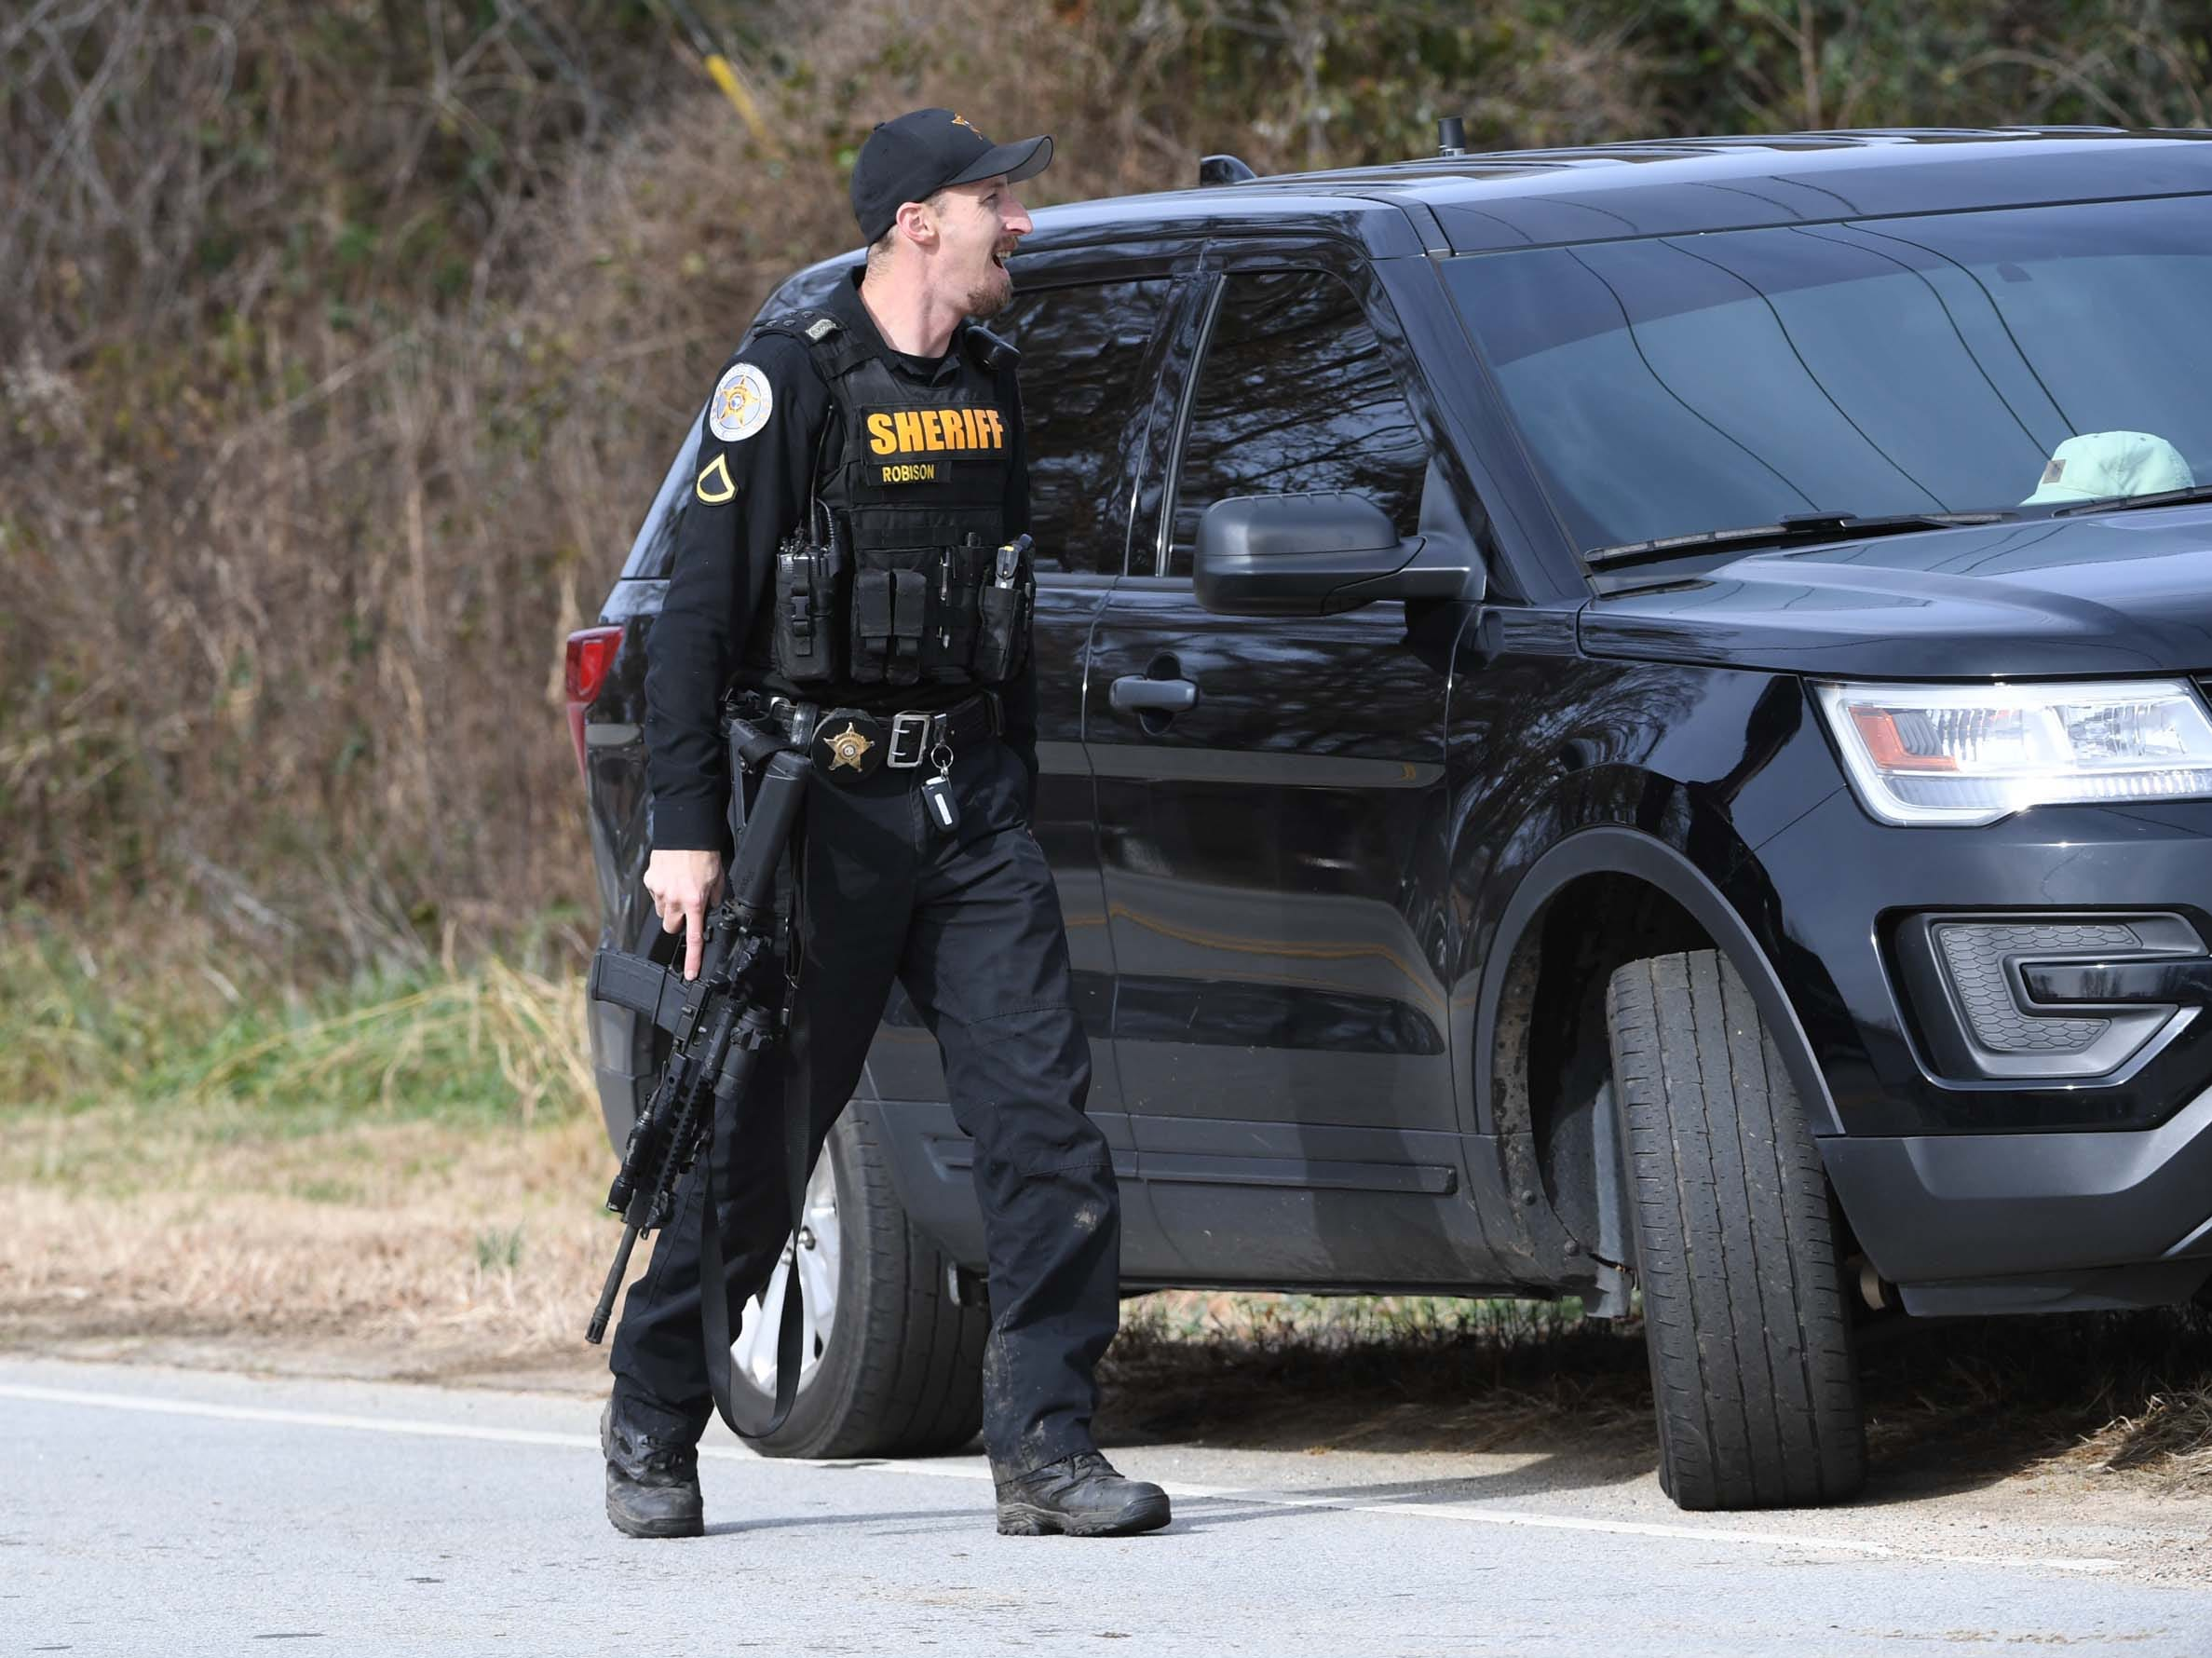 An Anderson County Sheriff Deputy on Brazeale Street in Belton following a report that a man struck an officer serving a warrant at a house Wednesday, December 12, 2018.